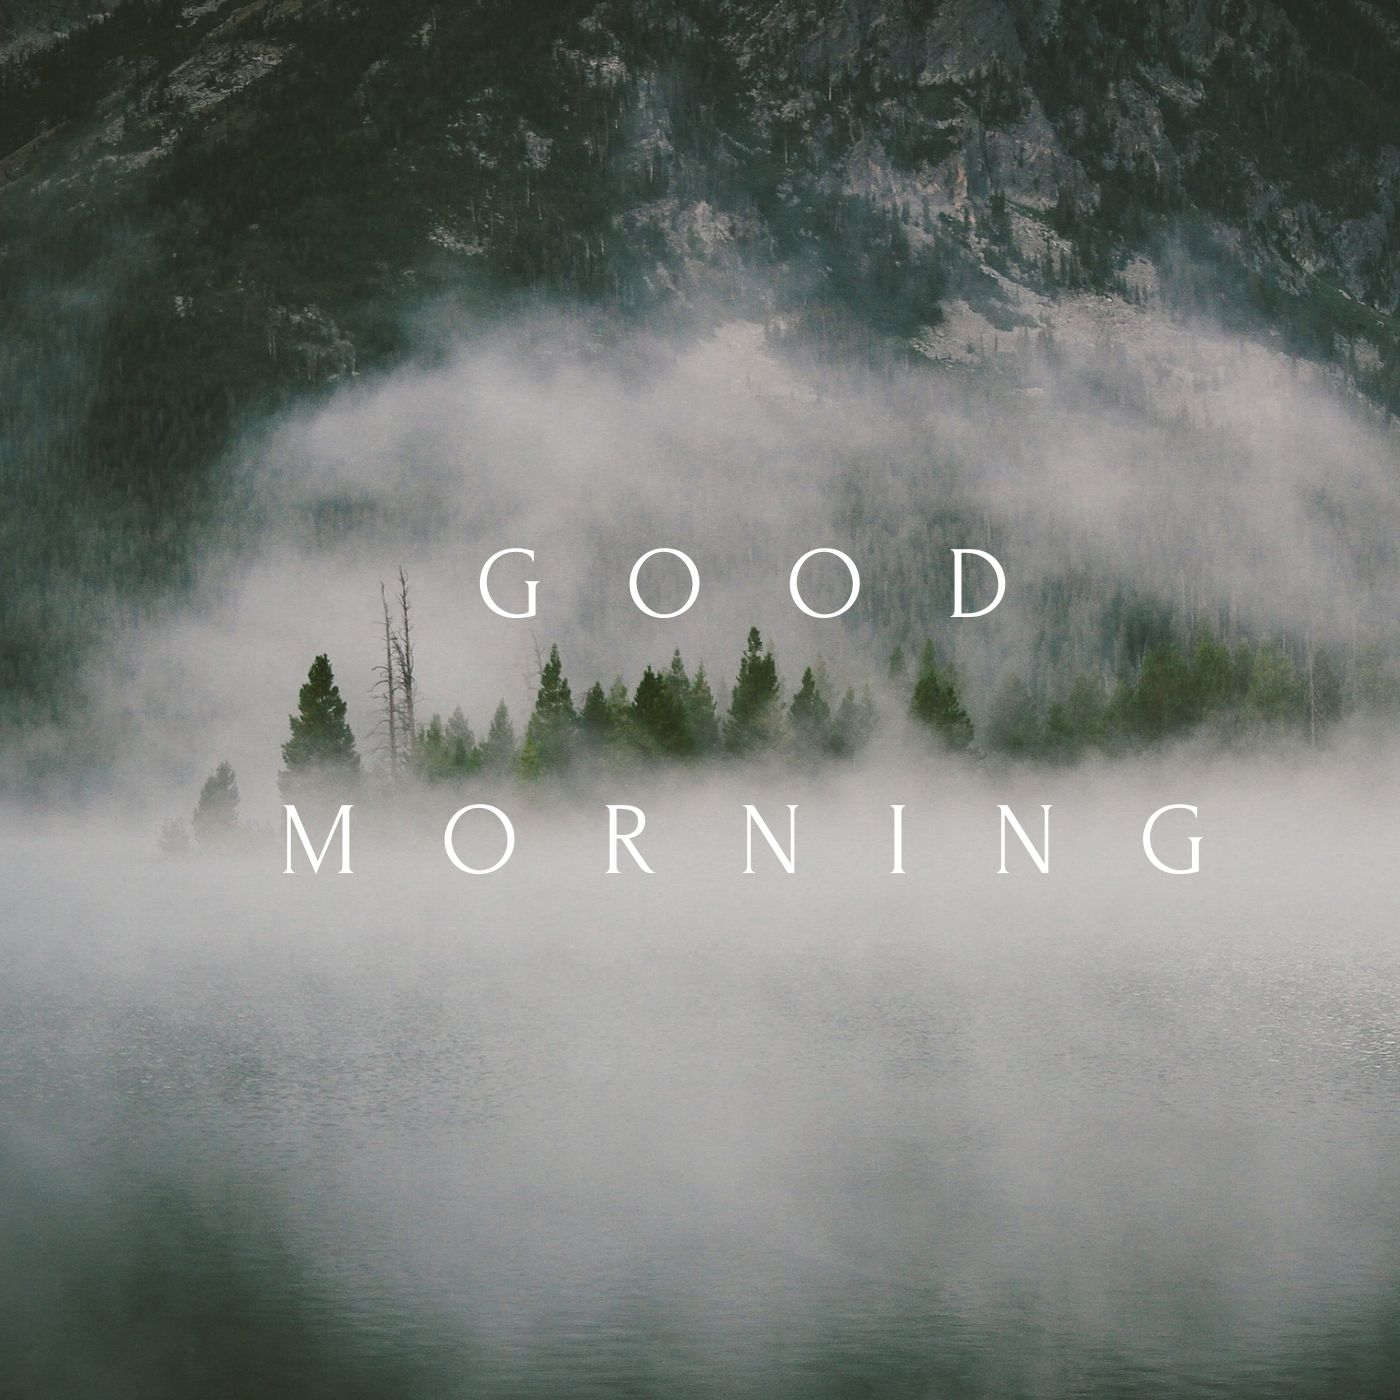 Good Morning Awesome Weather Image full HD free download.